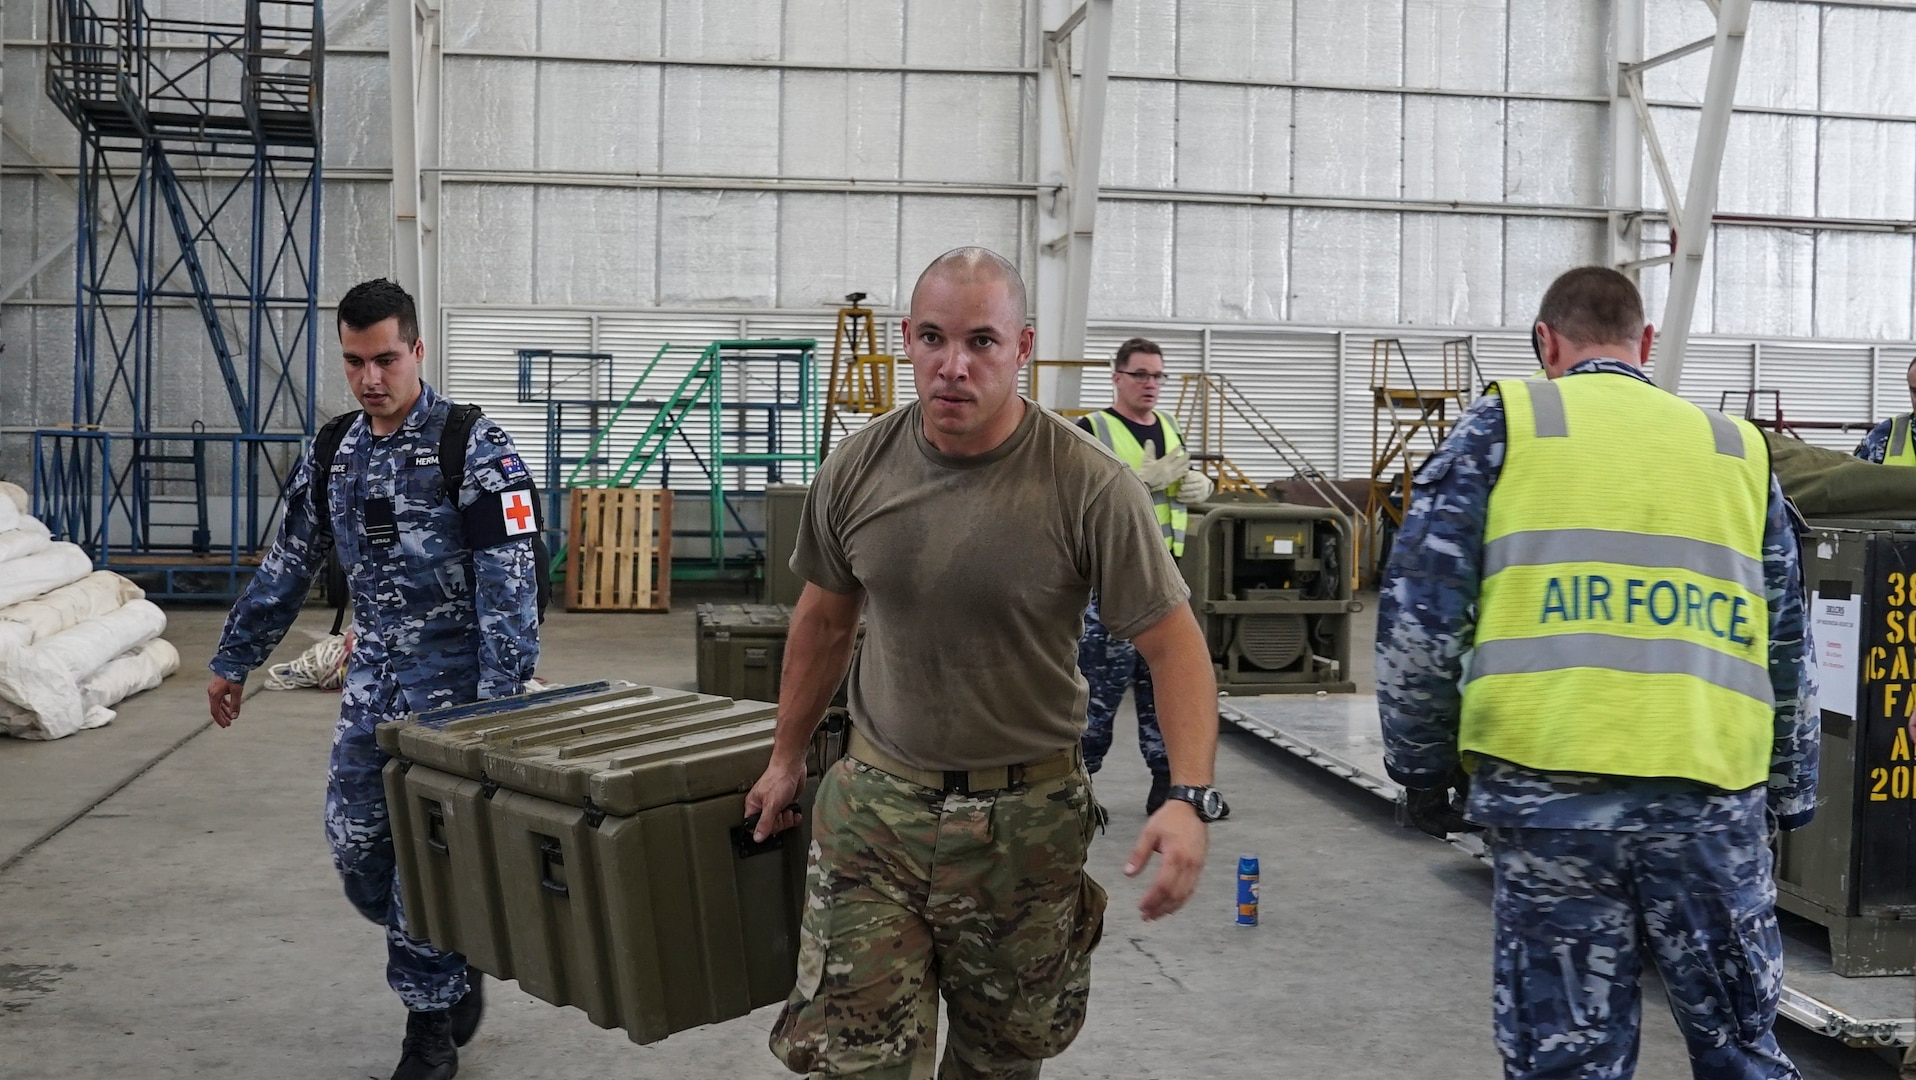 U.S. Air Force Tech Sgt. Eliezer Ribeiro, 36th Contingency Response Group vehicle maintenance NCO in charge at Andersen Air Force Base, helps Royal Australian Air Force medical personnel offload supplies in Balikpapan, Indonesia. The Indonesian Government and U.S. Agency for International Development are working alongside eight countries agencies and foreign militaries ensuring supplies, airlift, shelter and medical support reach those affected. (U.S. Air Force photo by Master Sgt. JT May III)